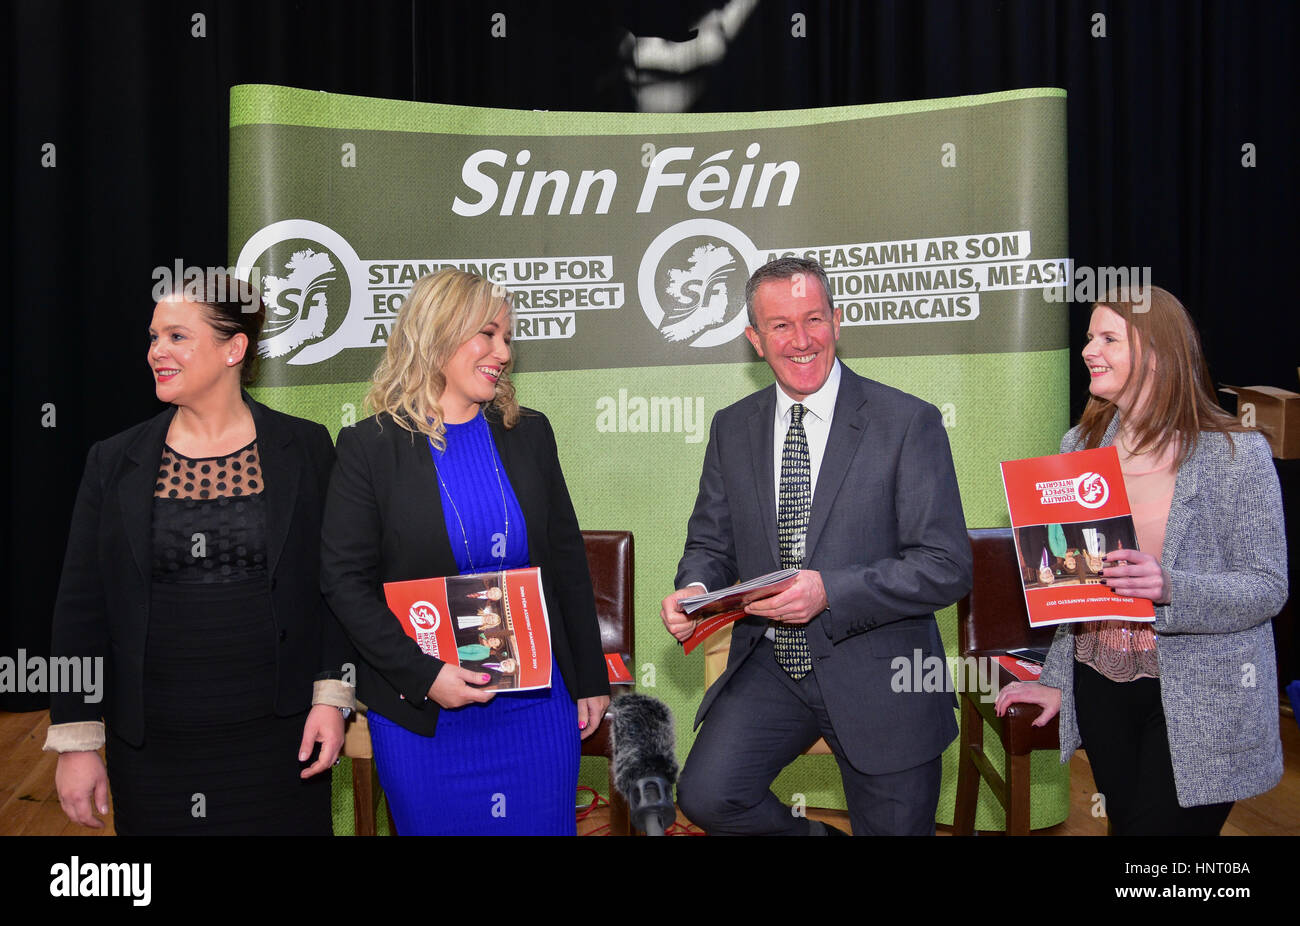 Armagh City, UK. 15th February 2017. Sinn Féin Party members Mary Lou McDonald TD, Party Leader Michelle O'Neill, - Stock Image